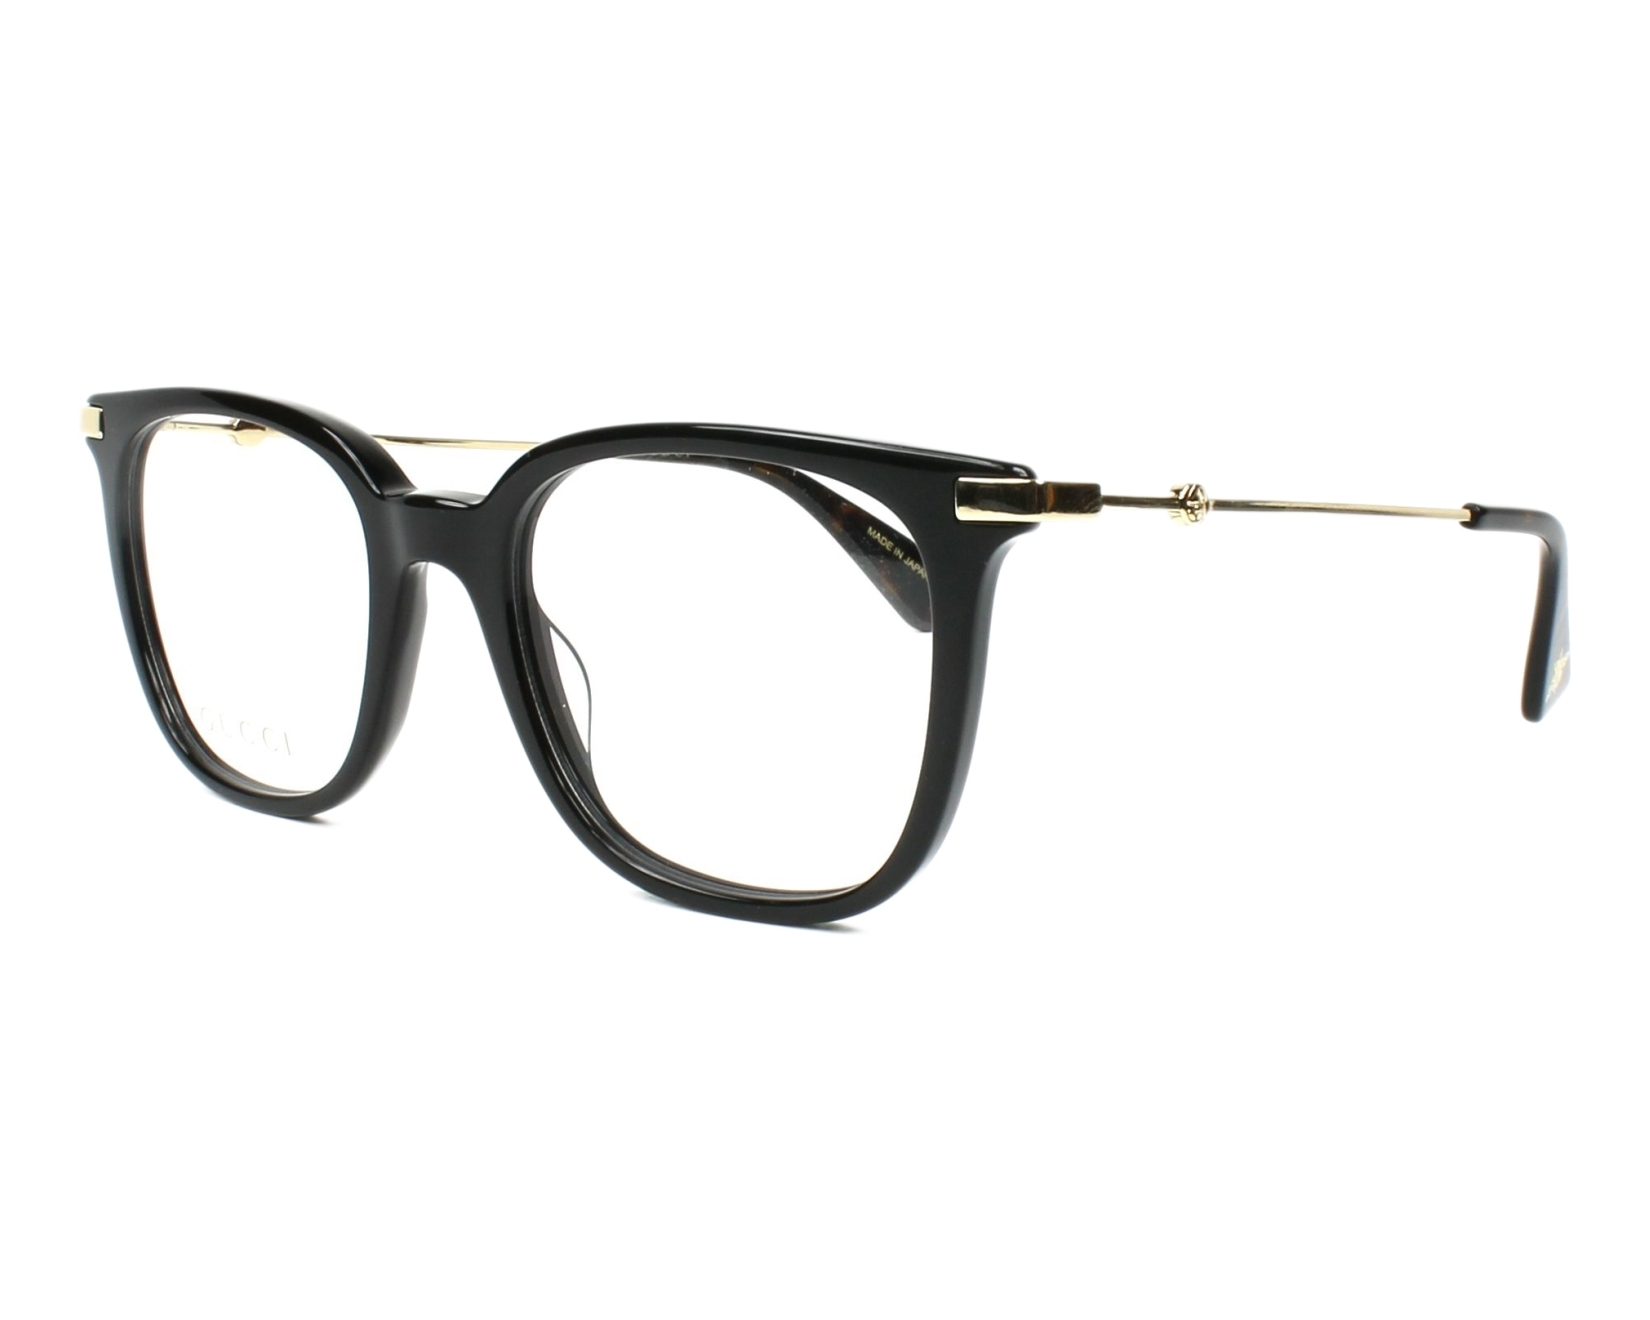 9a55ea08266 eyeglasses Gucci GG-01100 001 49-19 Black Gold profile view